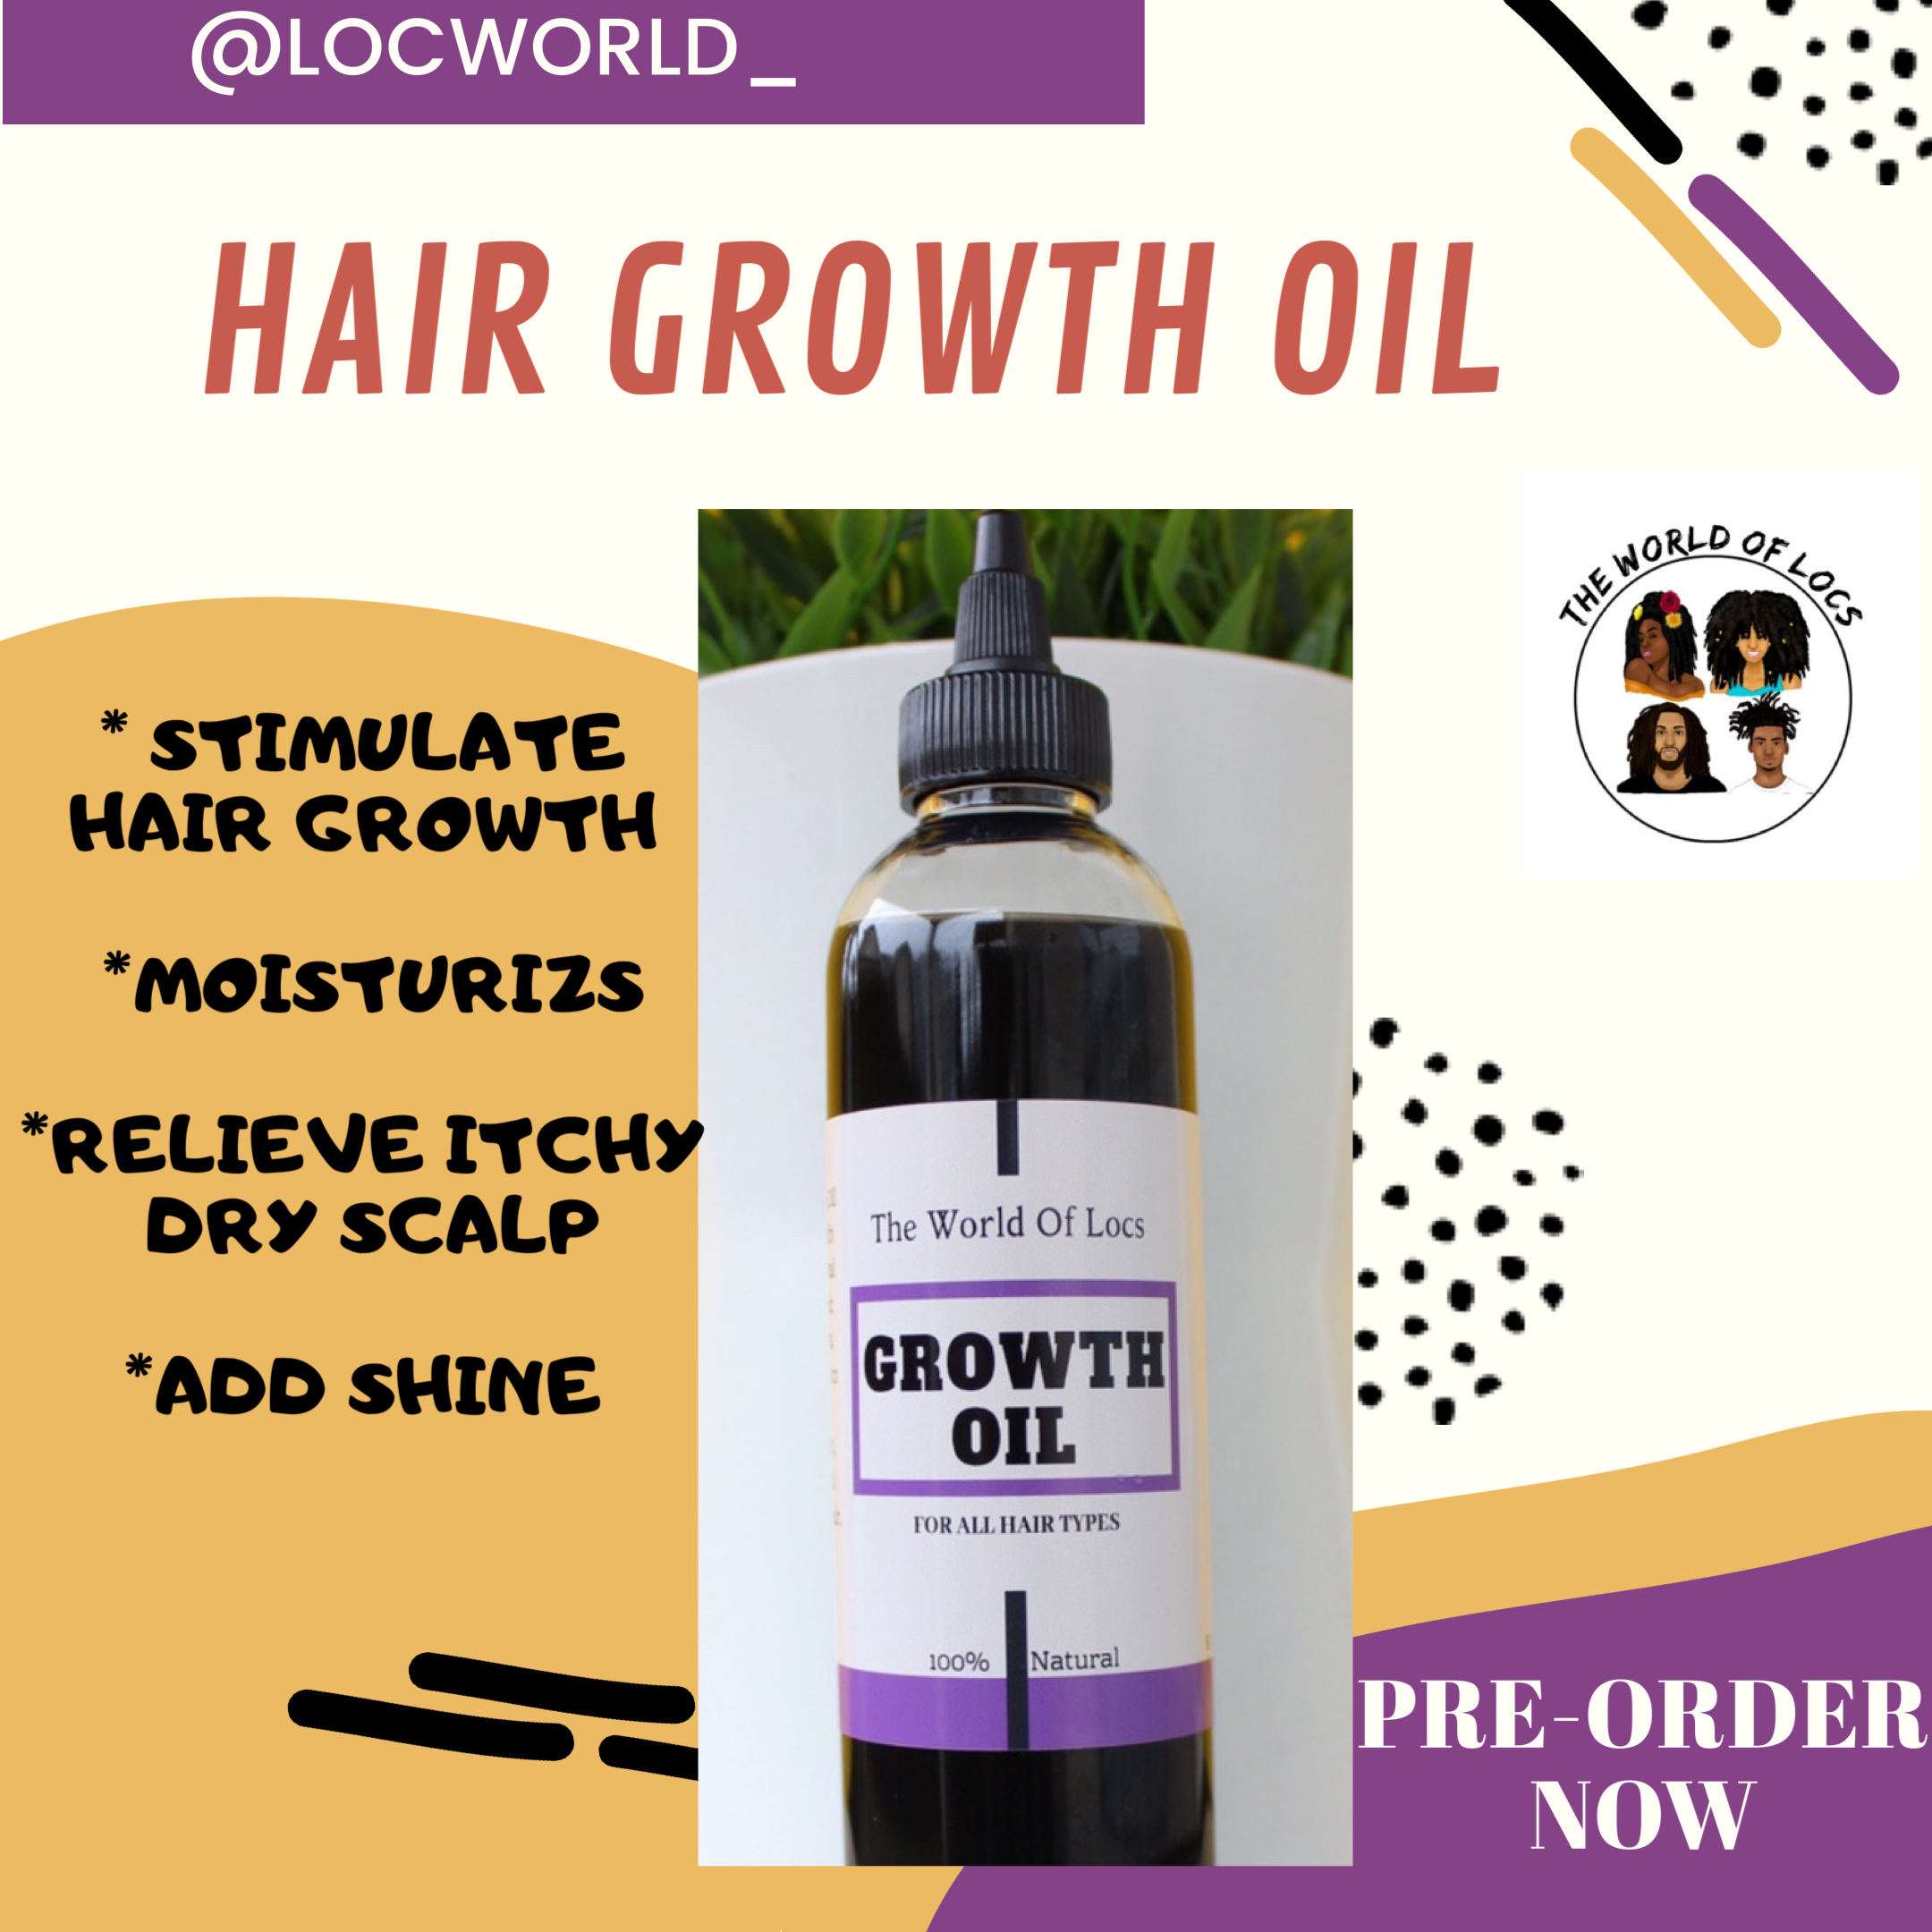 Wild Growth Oil (With images) Growth oil, Dry itchy scalp